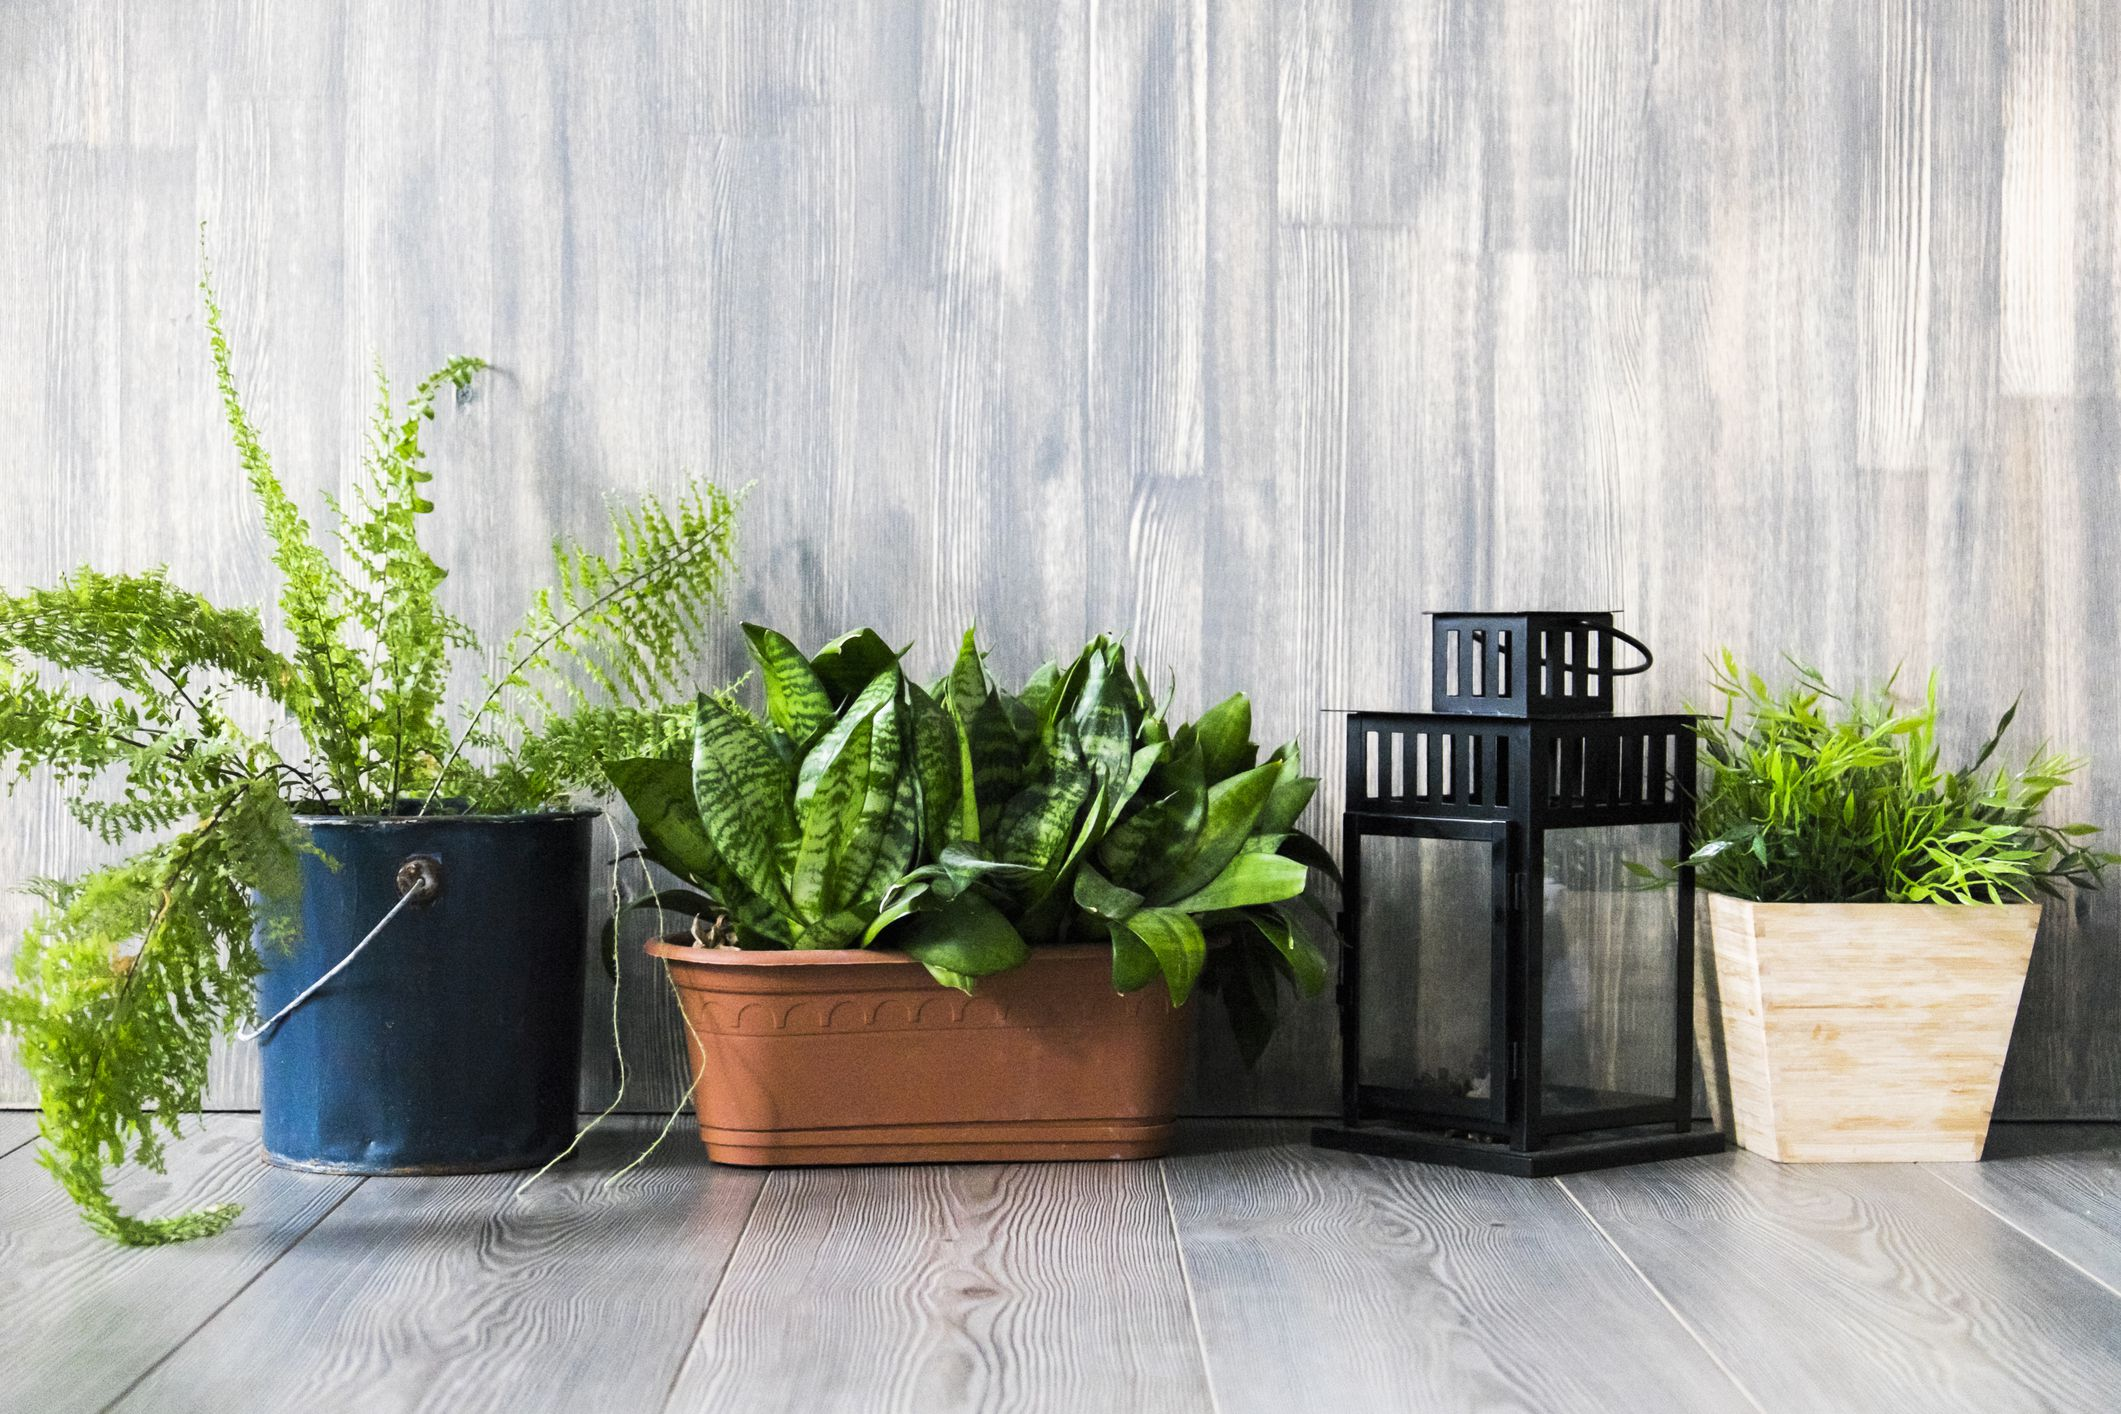 How To Overwinter Annual Plants Indoors